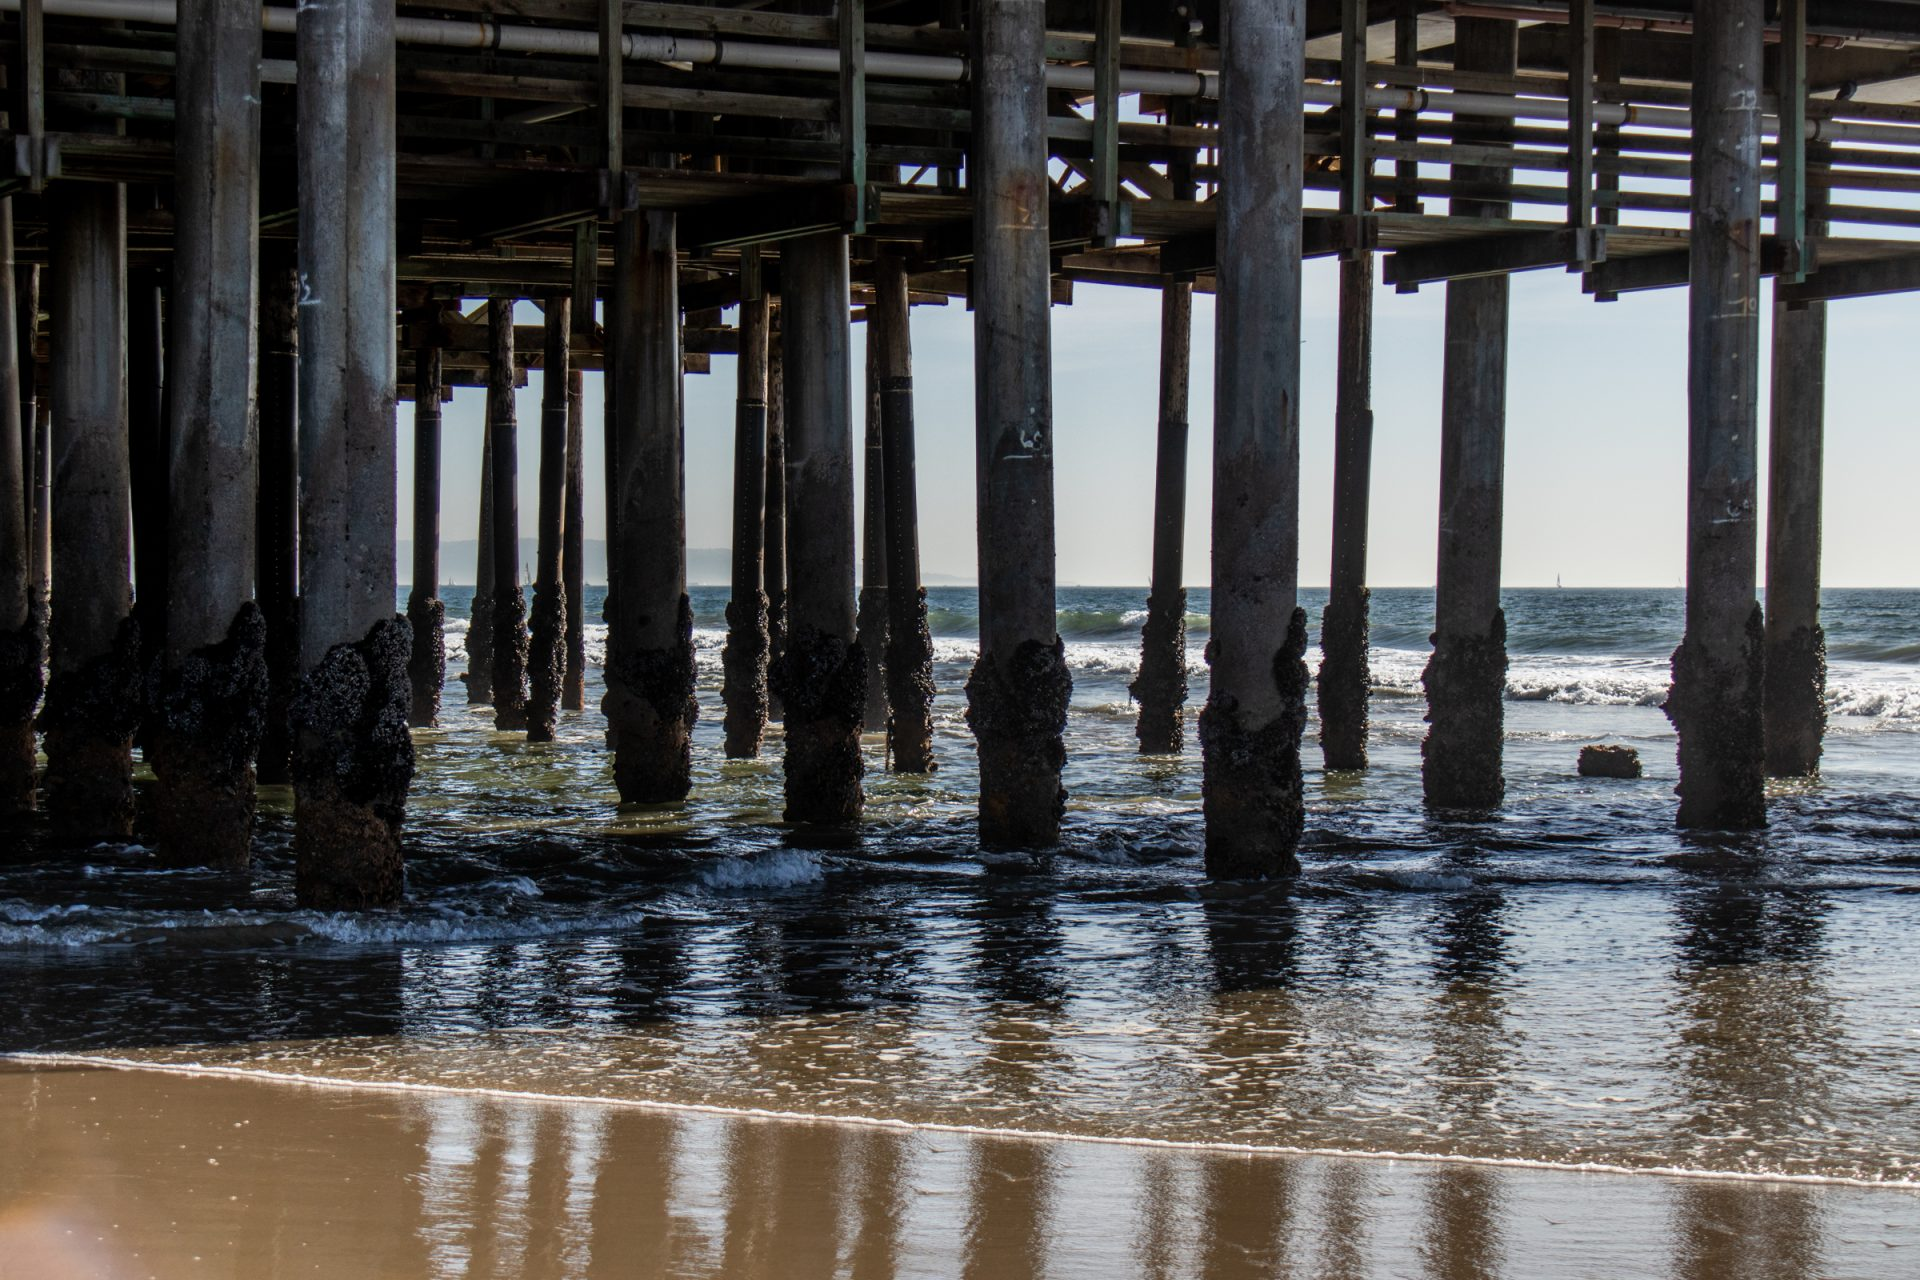 Pier Structure On Barnacle Covered Pilings